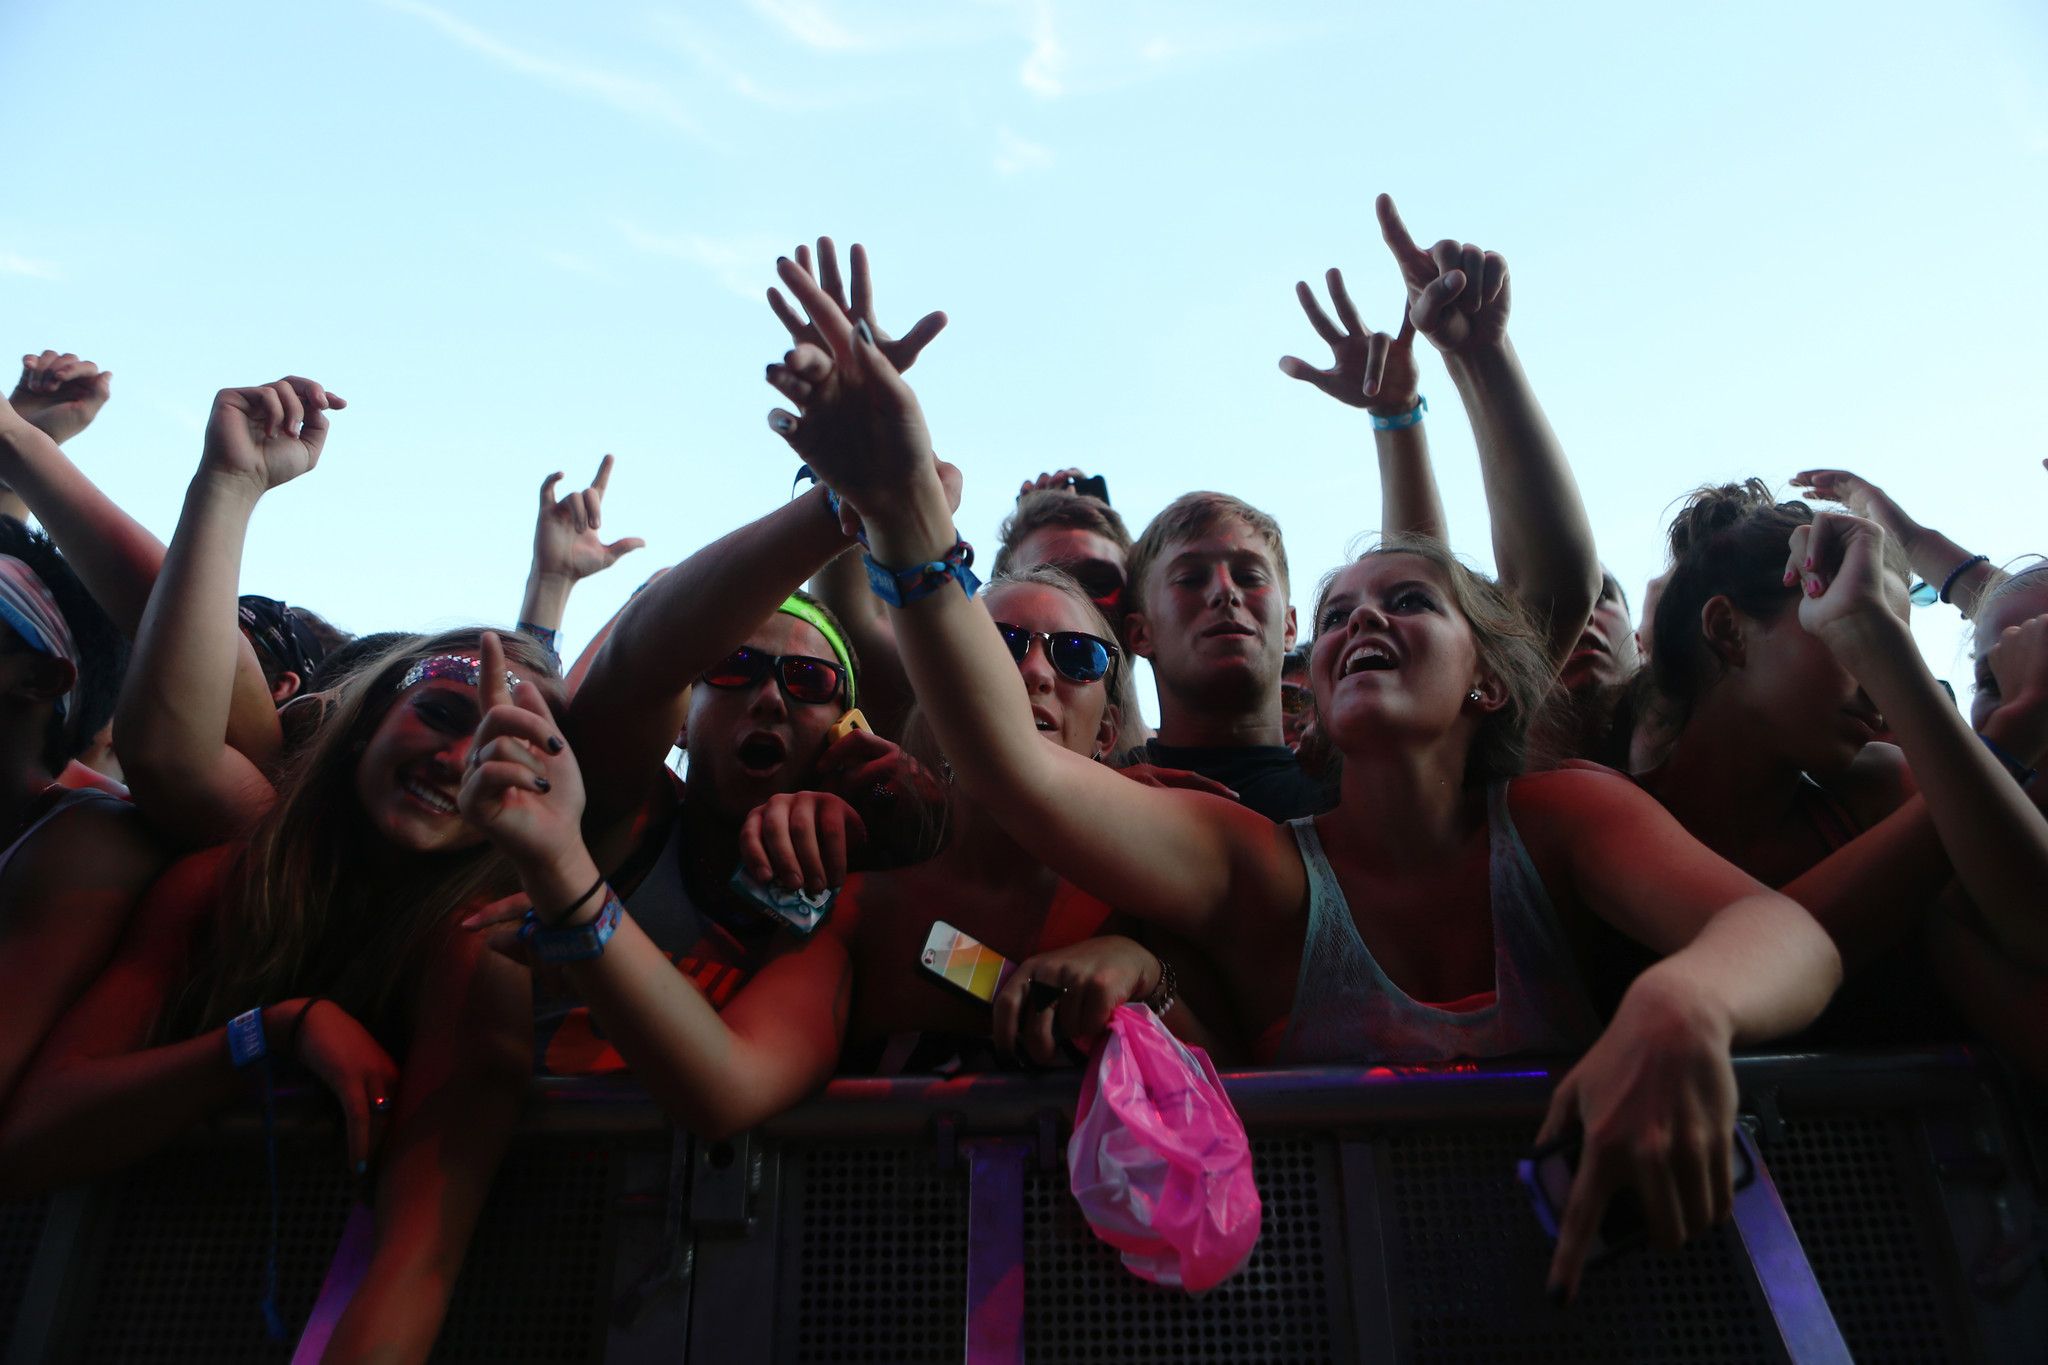 Photos: 2013 Lollapalooza Day Two - Fans react to Kendrick Lamar